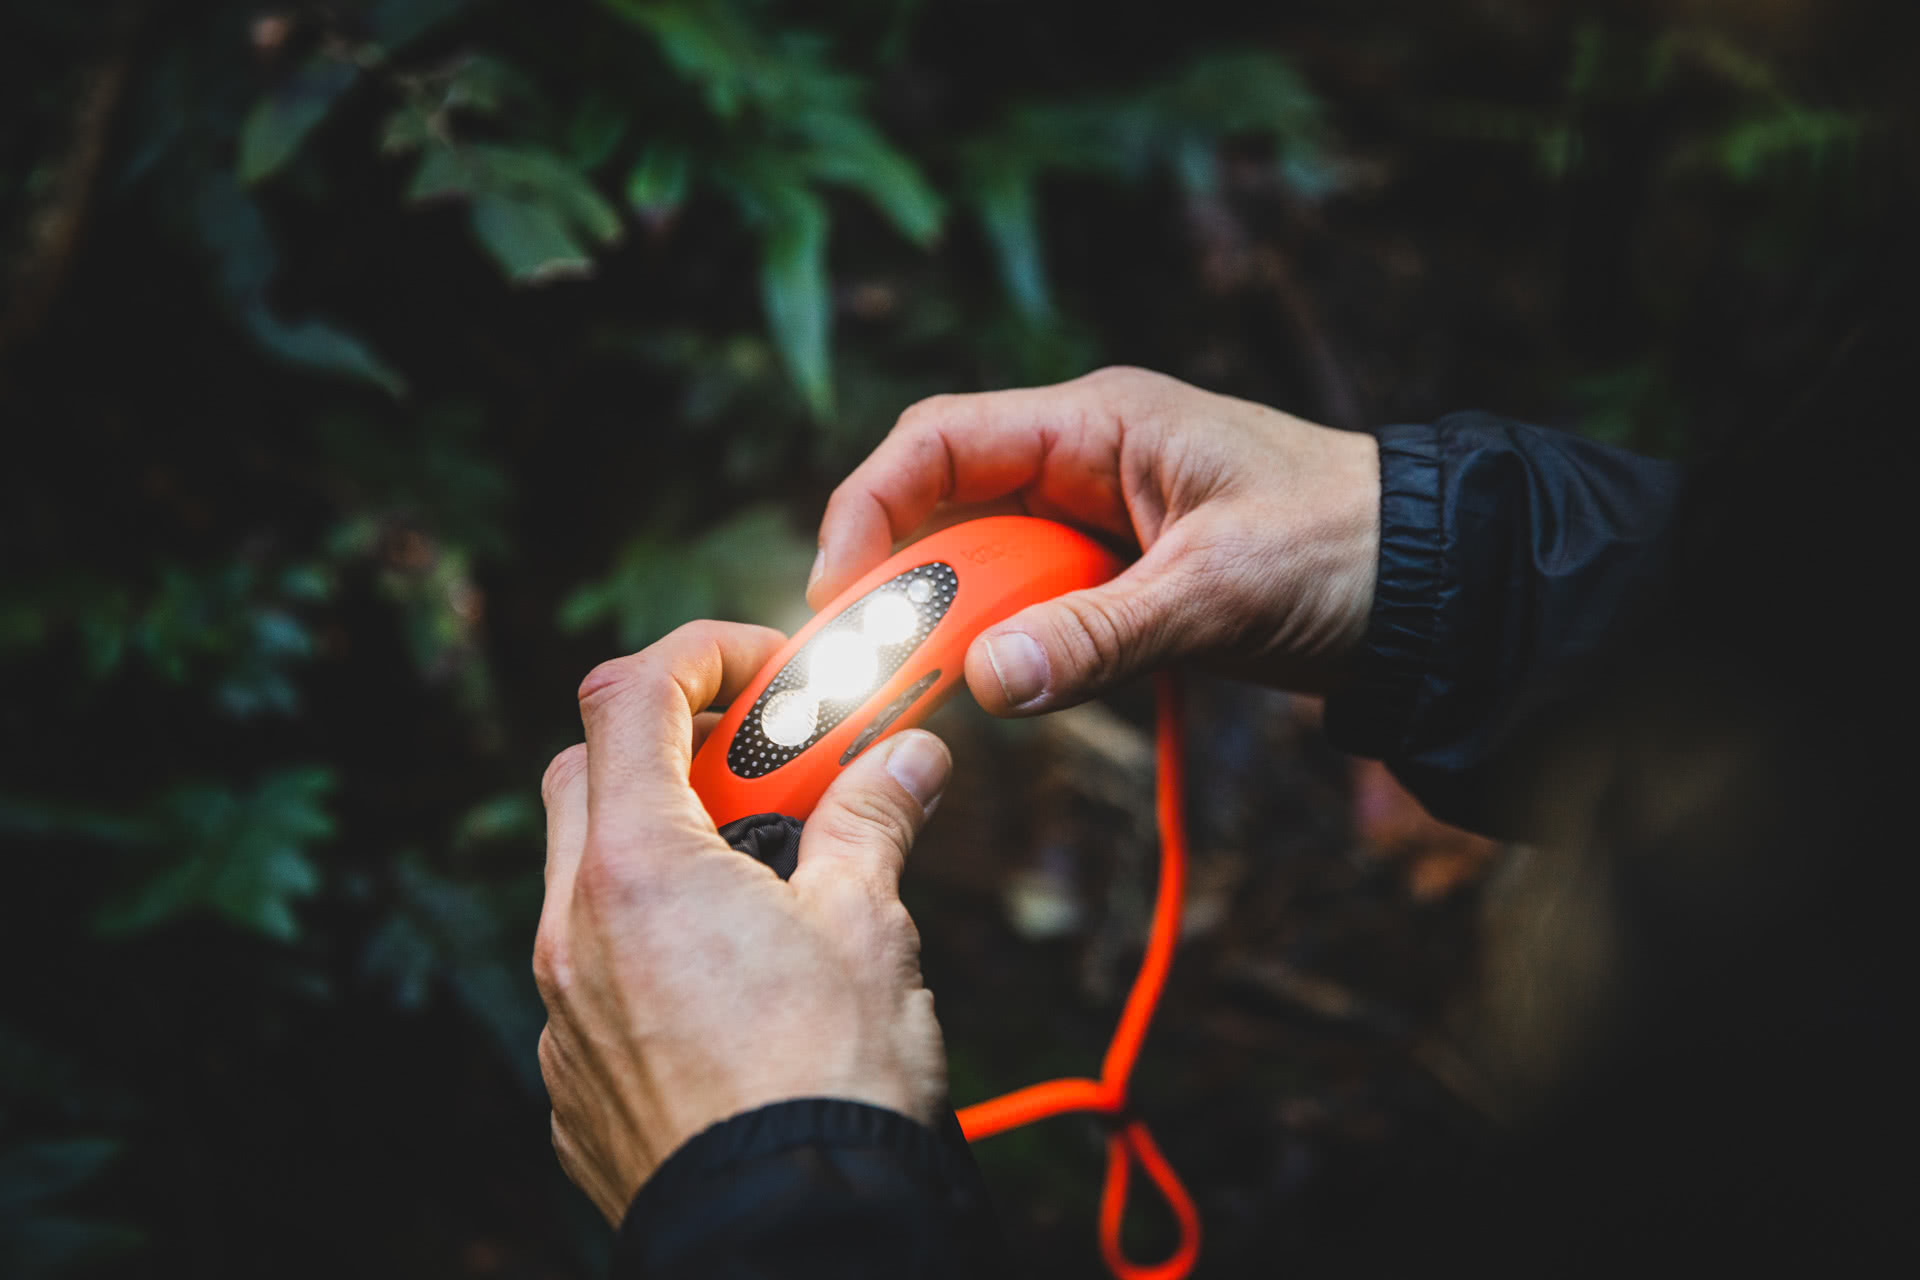 5 Adventures To Make Life Unboring, knog, photo by guy wilmot, empress canyon, blue mountains, nsw, bilby headlamp, light, torch